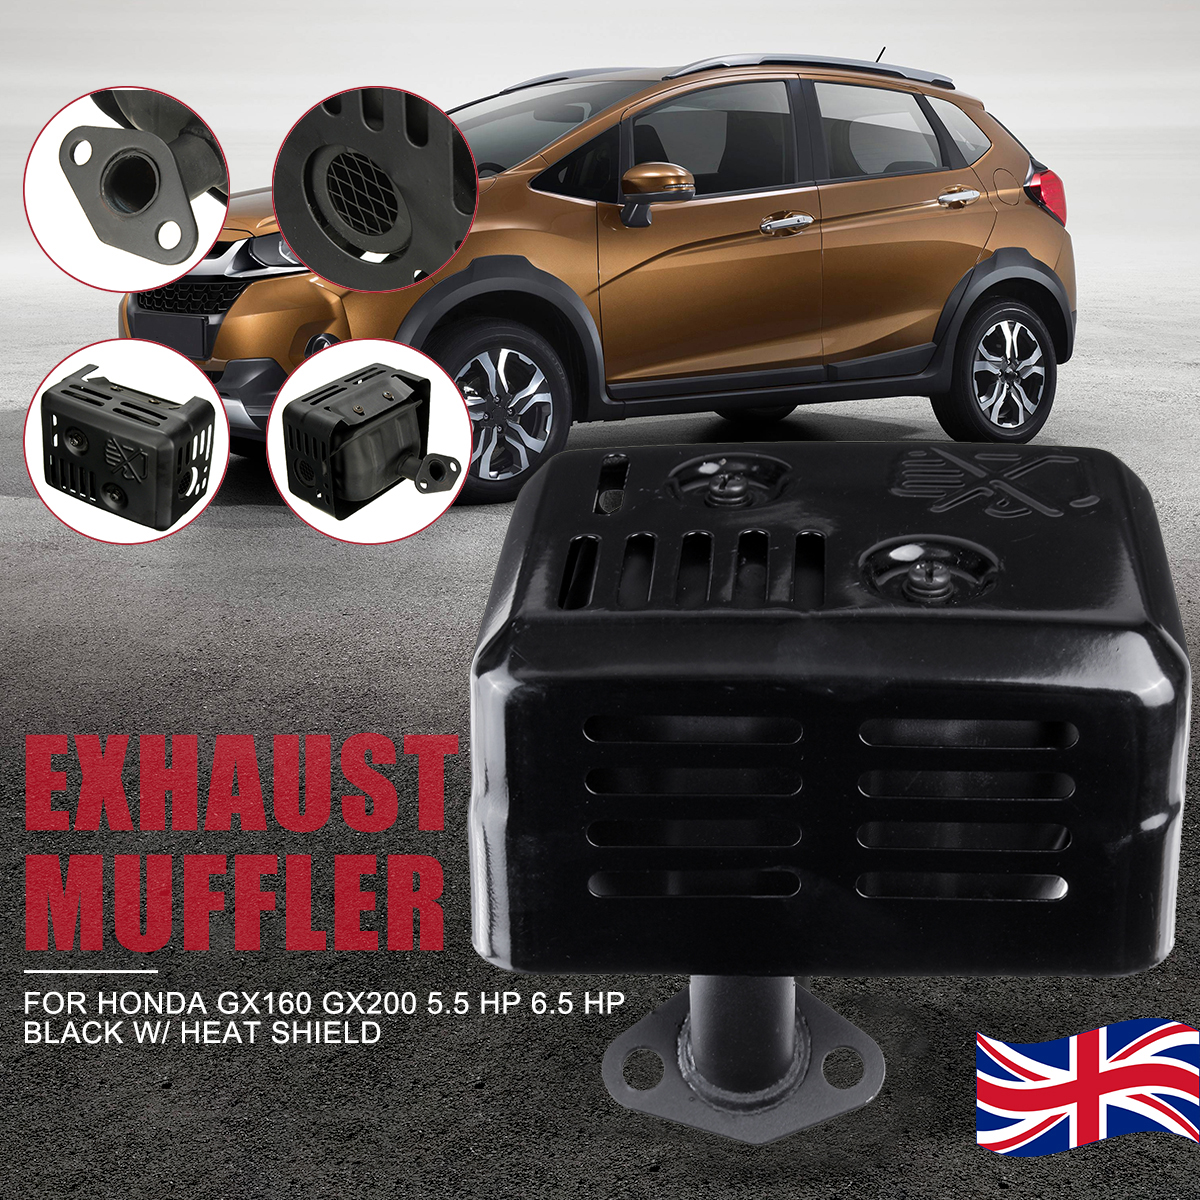 Brand New Exhaust Muffler System with heat shield For Honda GX120 GX160 GX200 5.5 for HP 6.5 for HP  Assembly Gasket